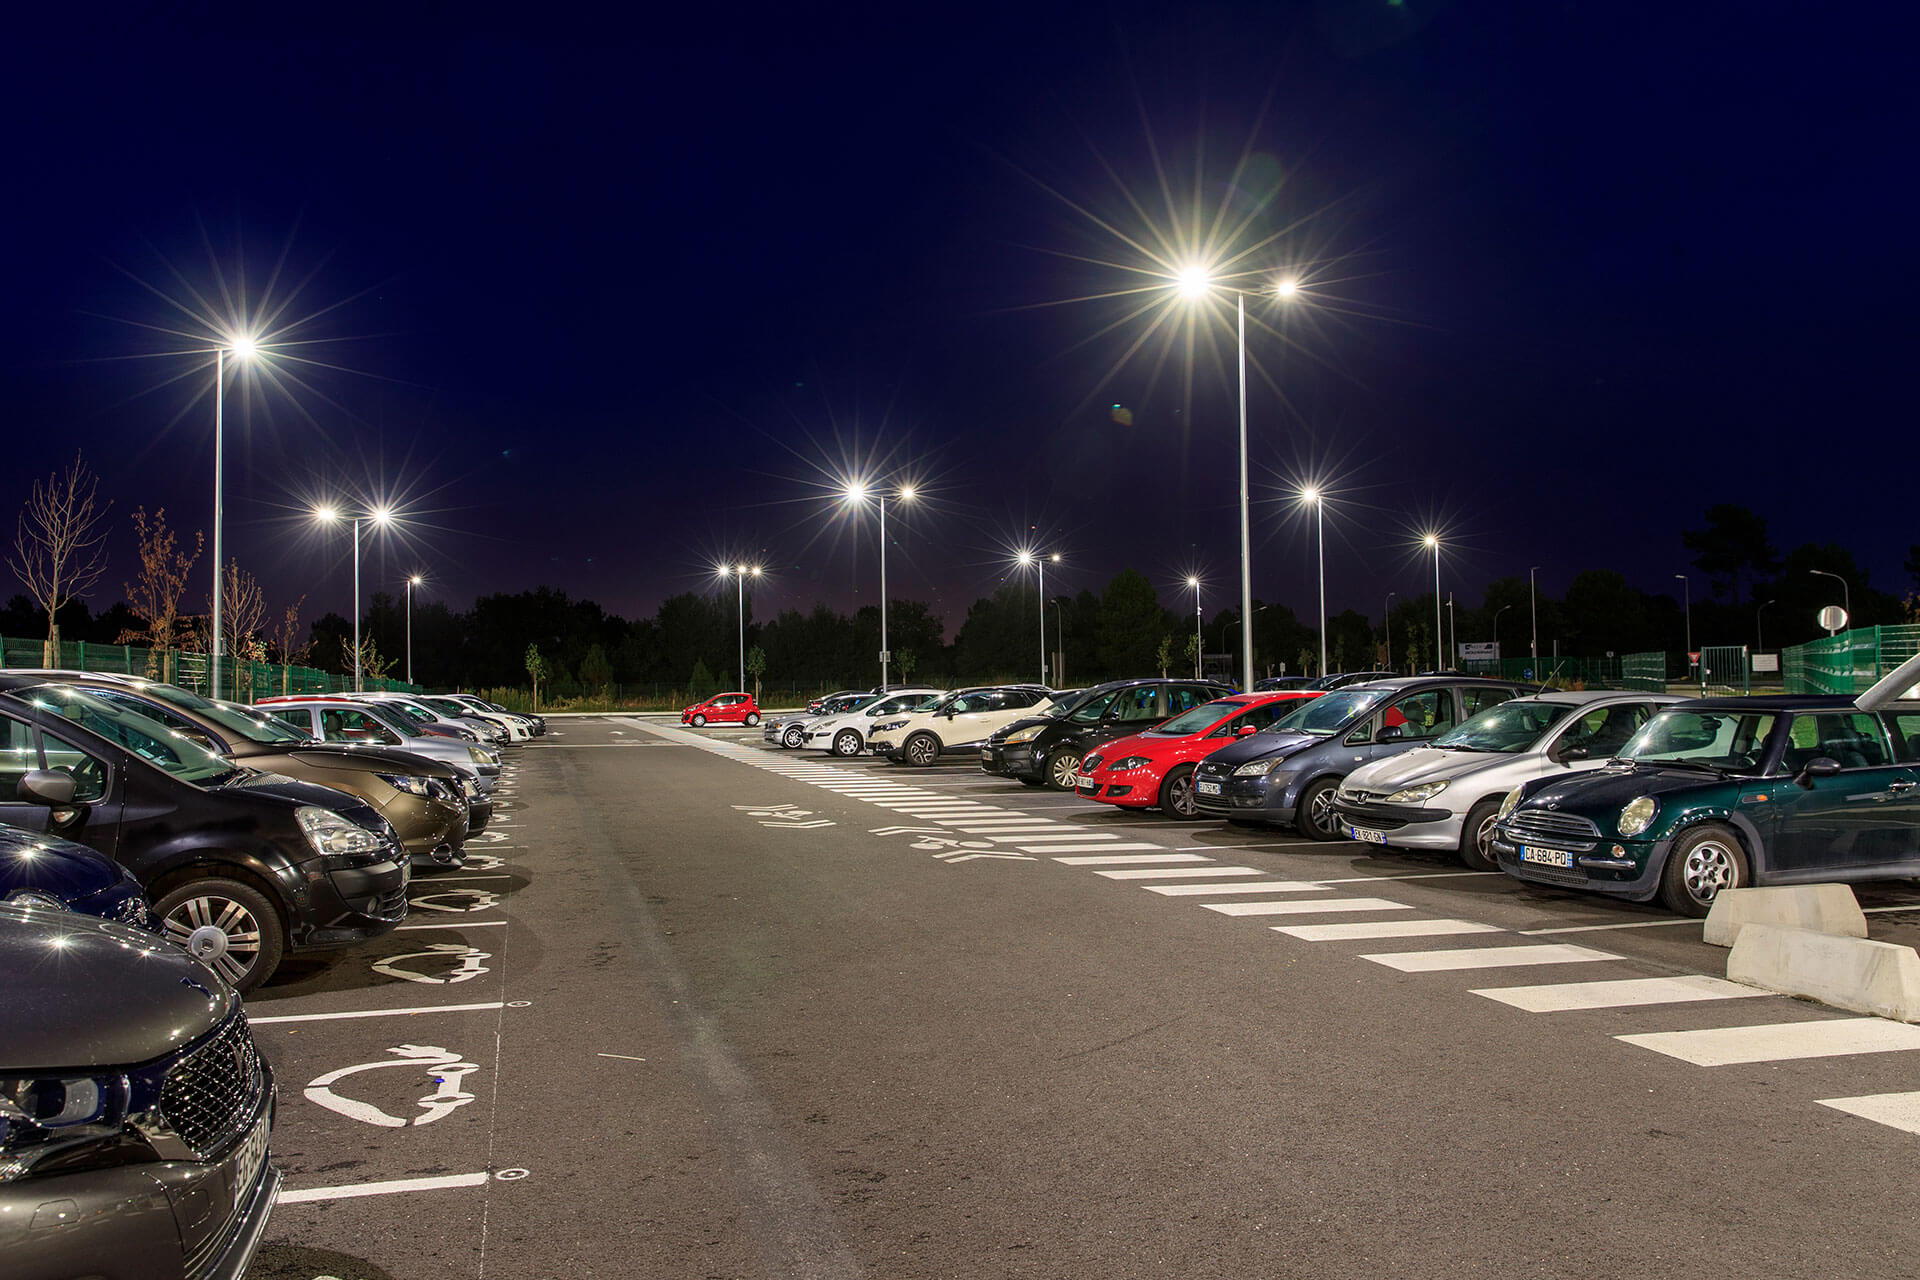 Axia 2 LED luminaires light the car park of this Carrefour distribution centre to ensure a safe passage for all